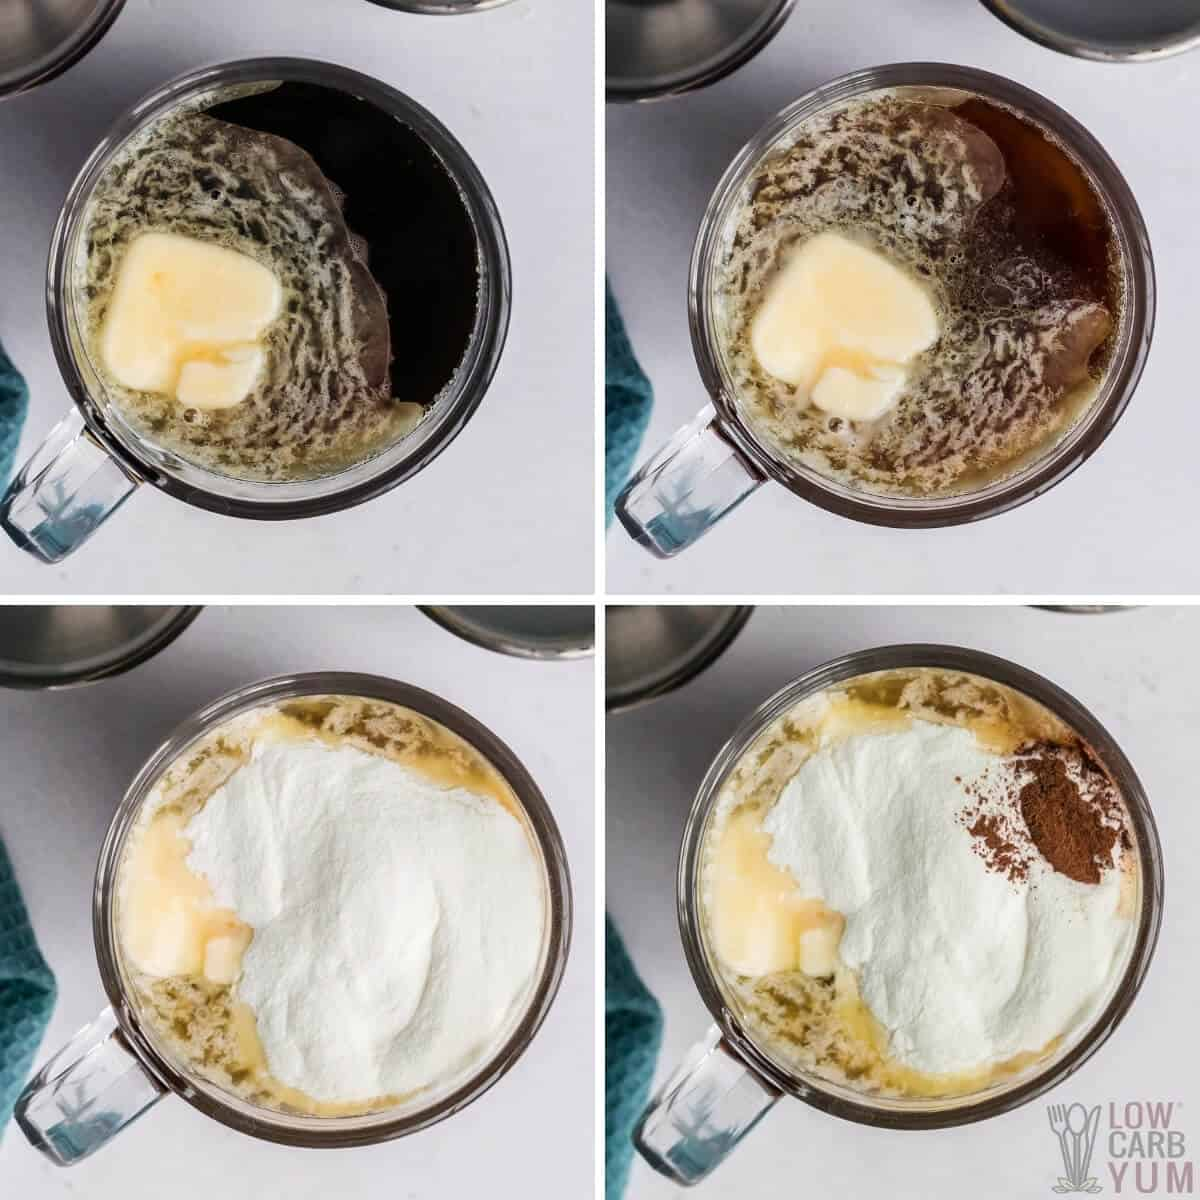 steps on how to make bulletproof coffee